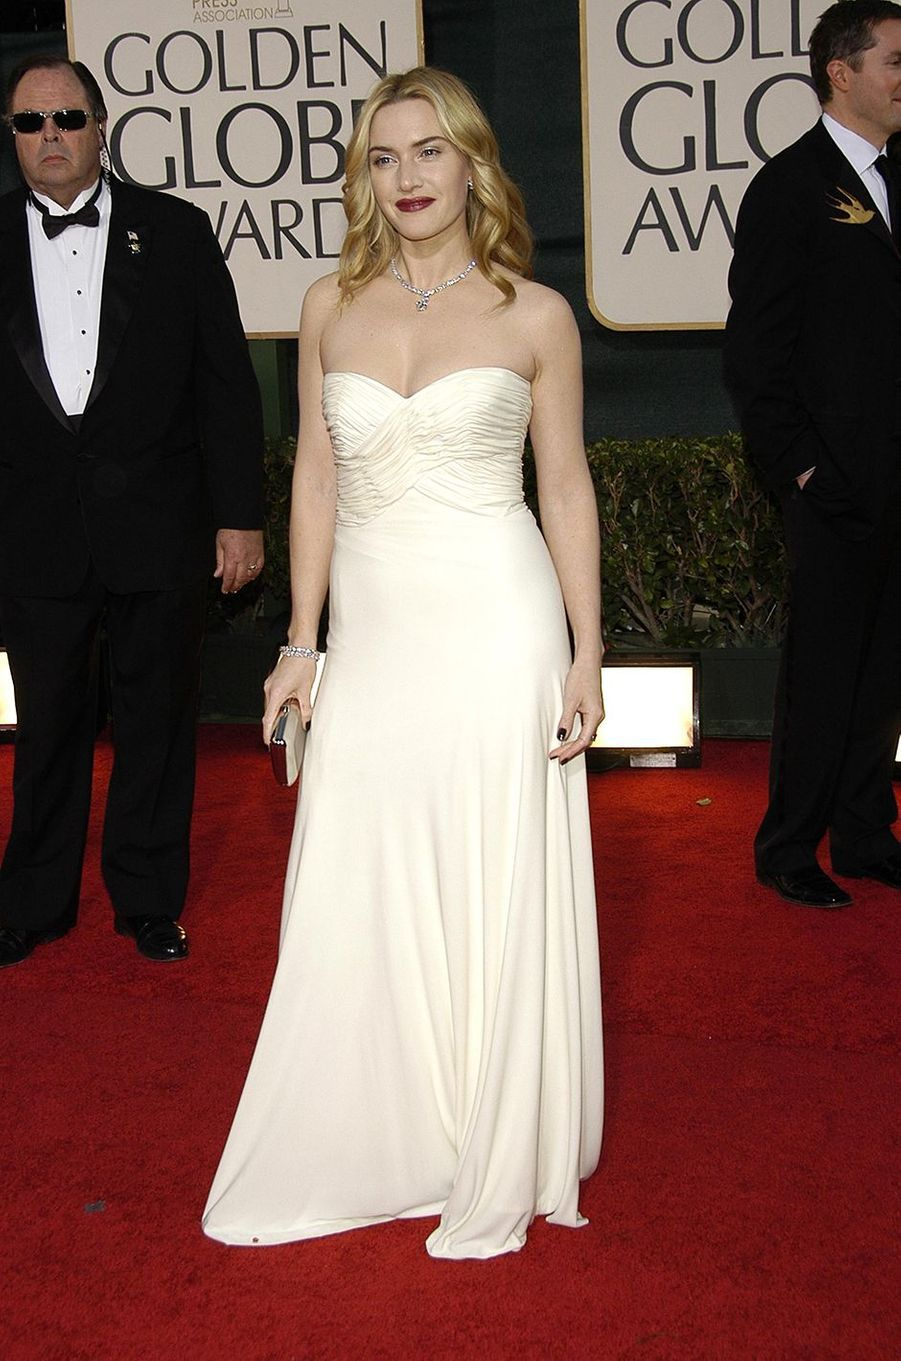 Kate Winslet aux Golden Globes à Los Angeles en janvier 2007